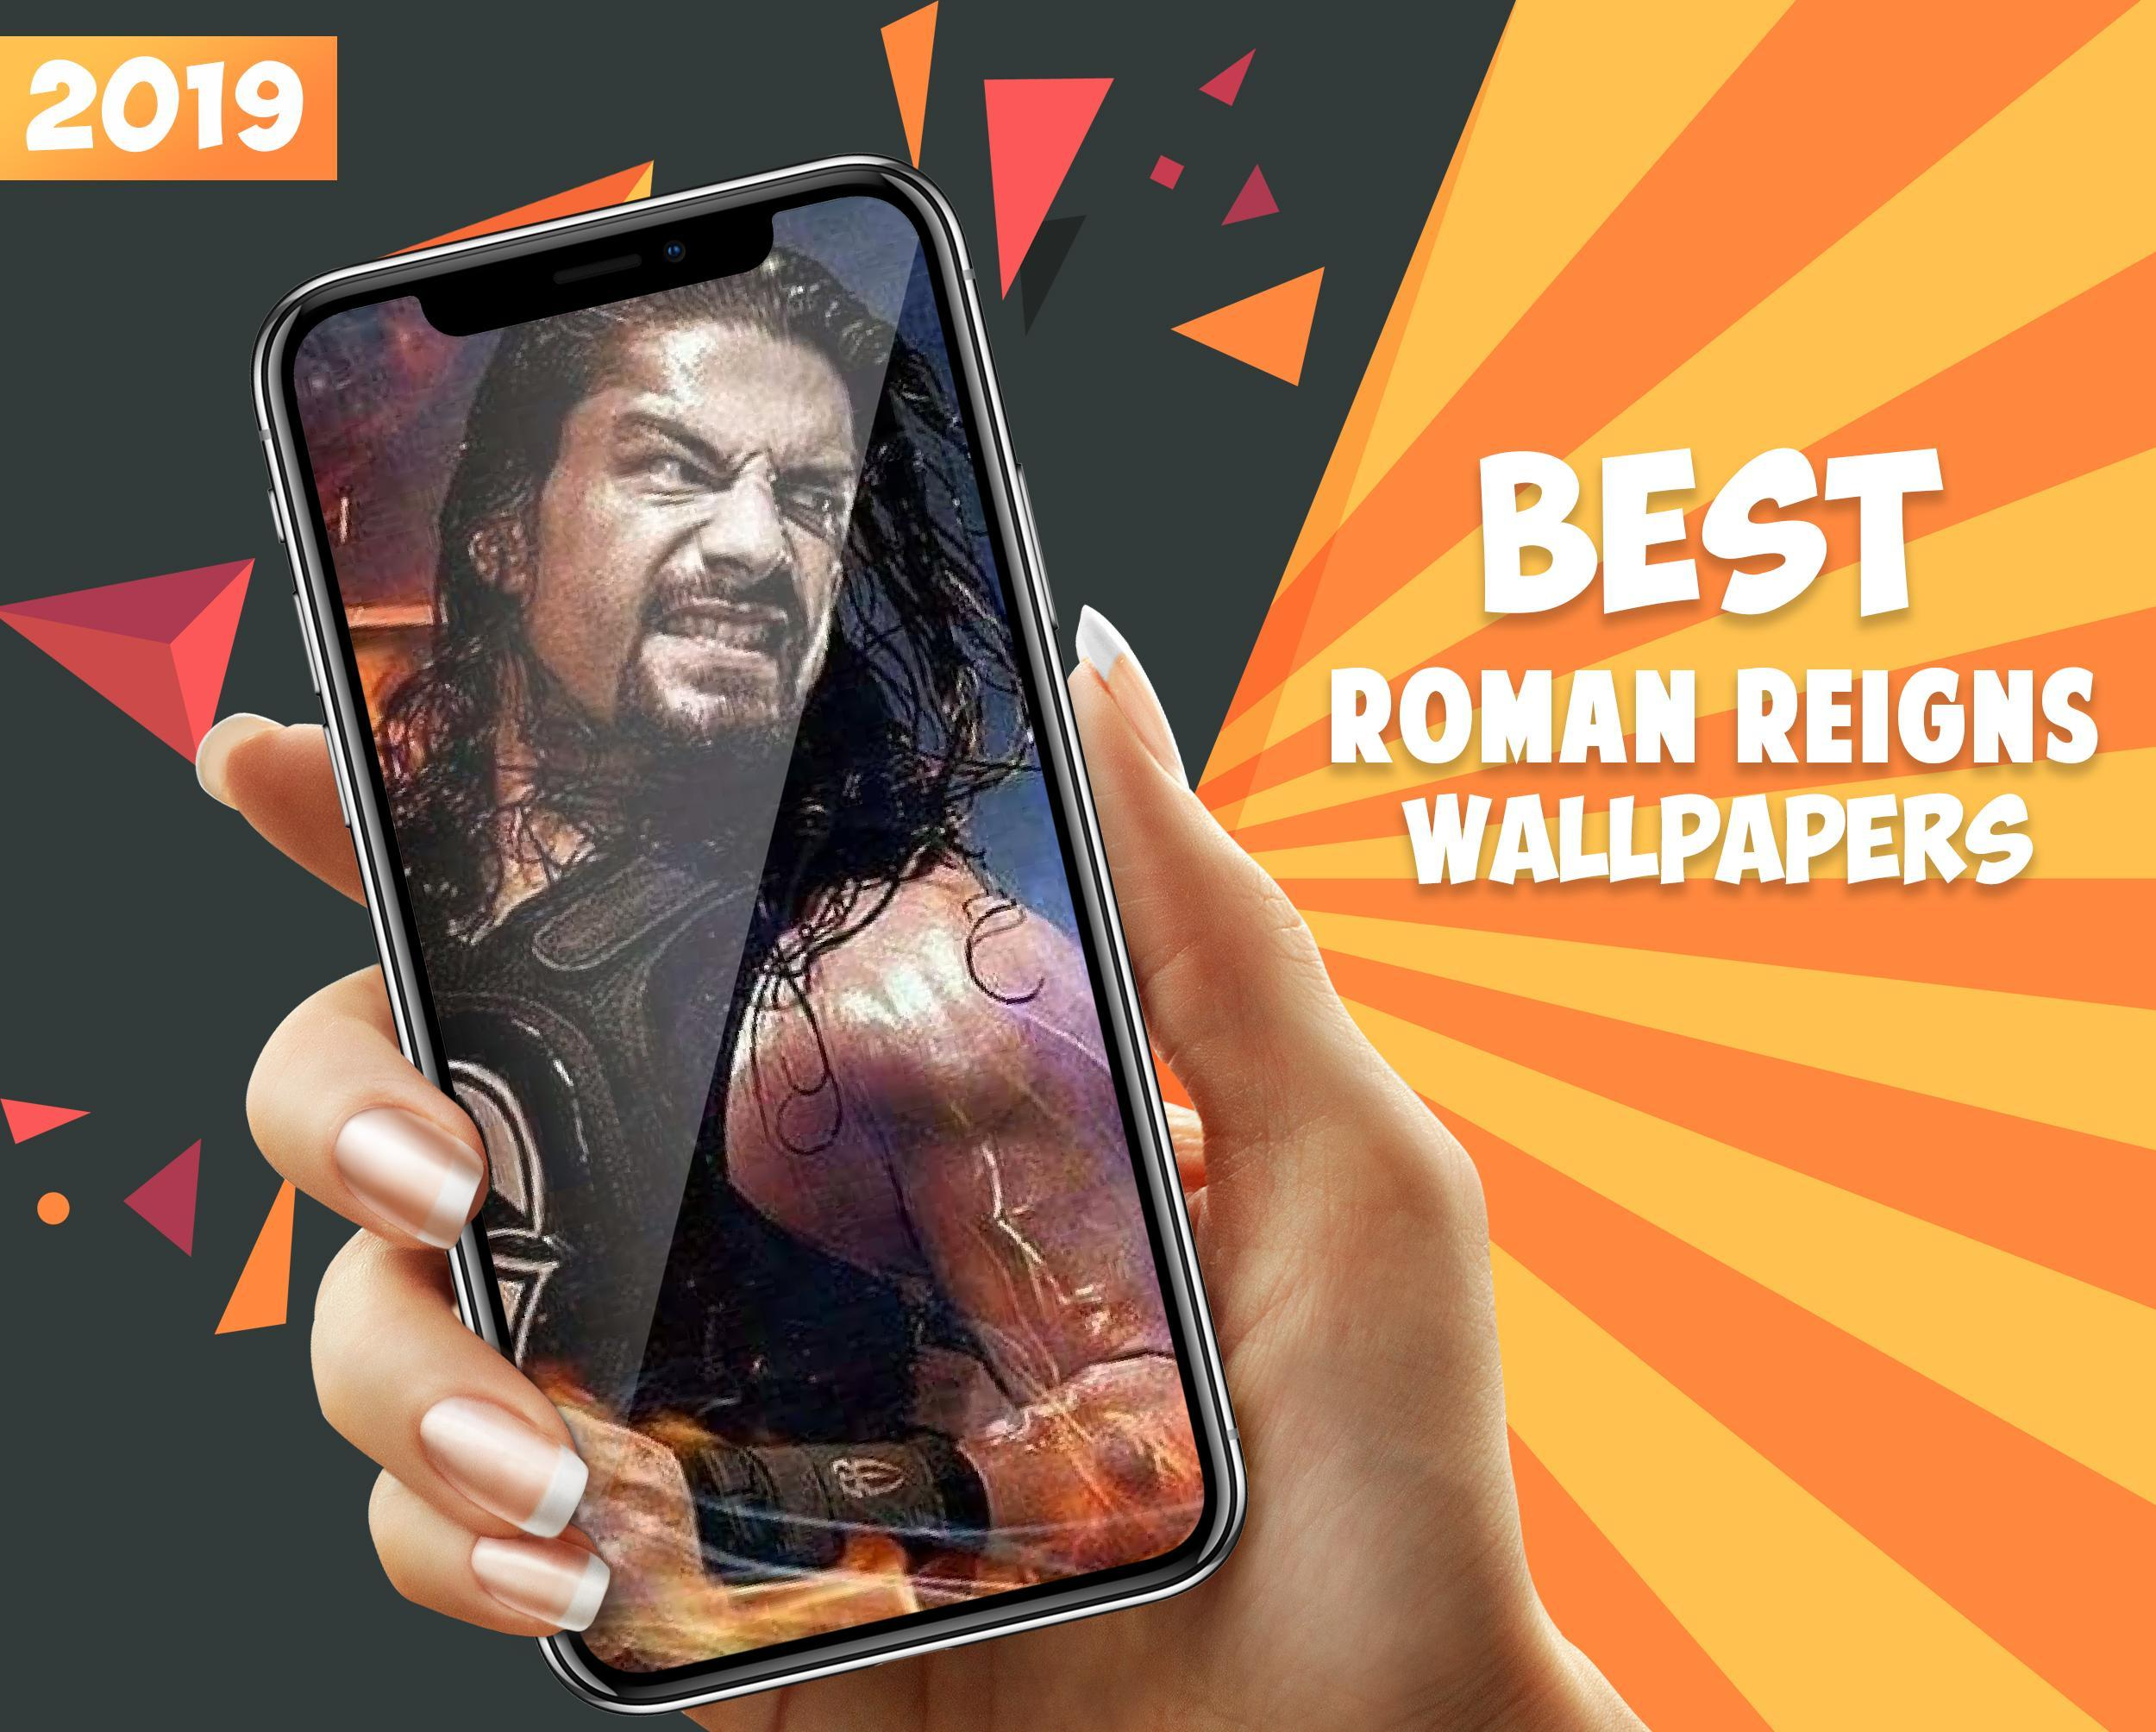 Roman Reigns Hd Wallpapers 2019 For Android Apk Download